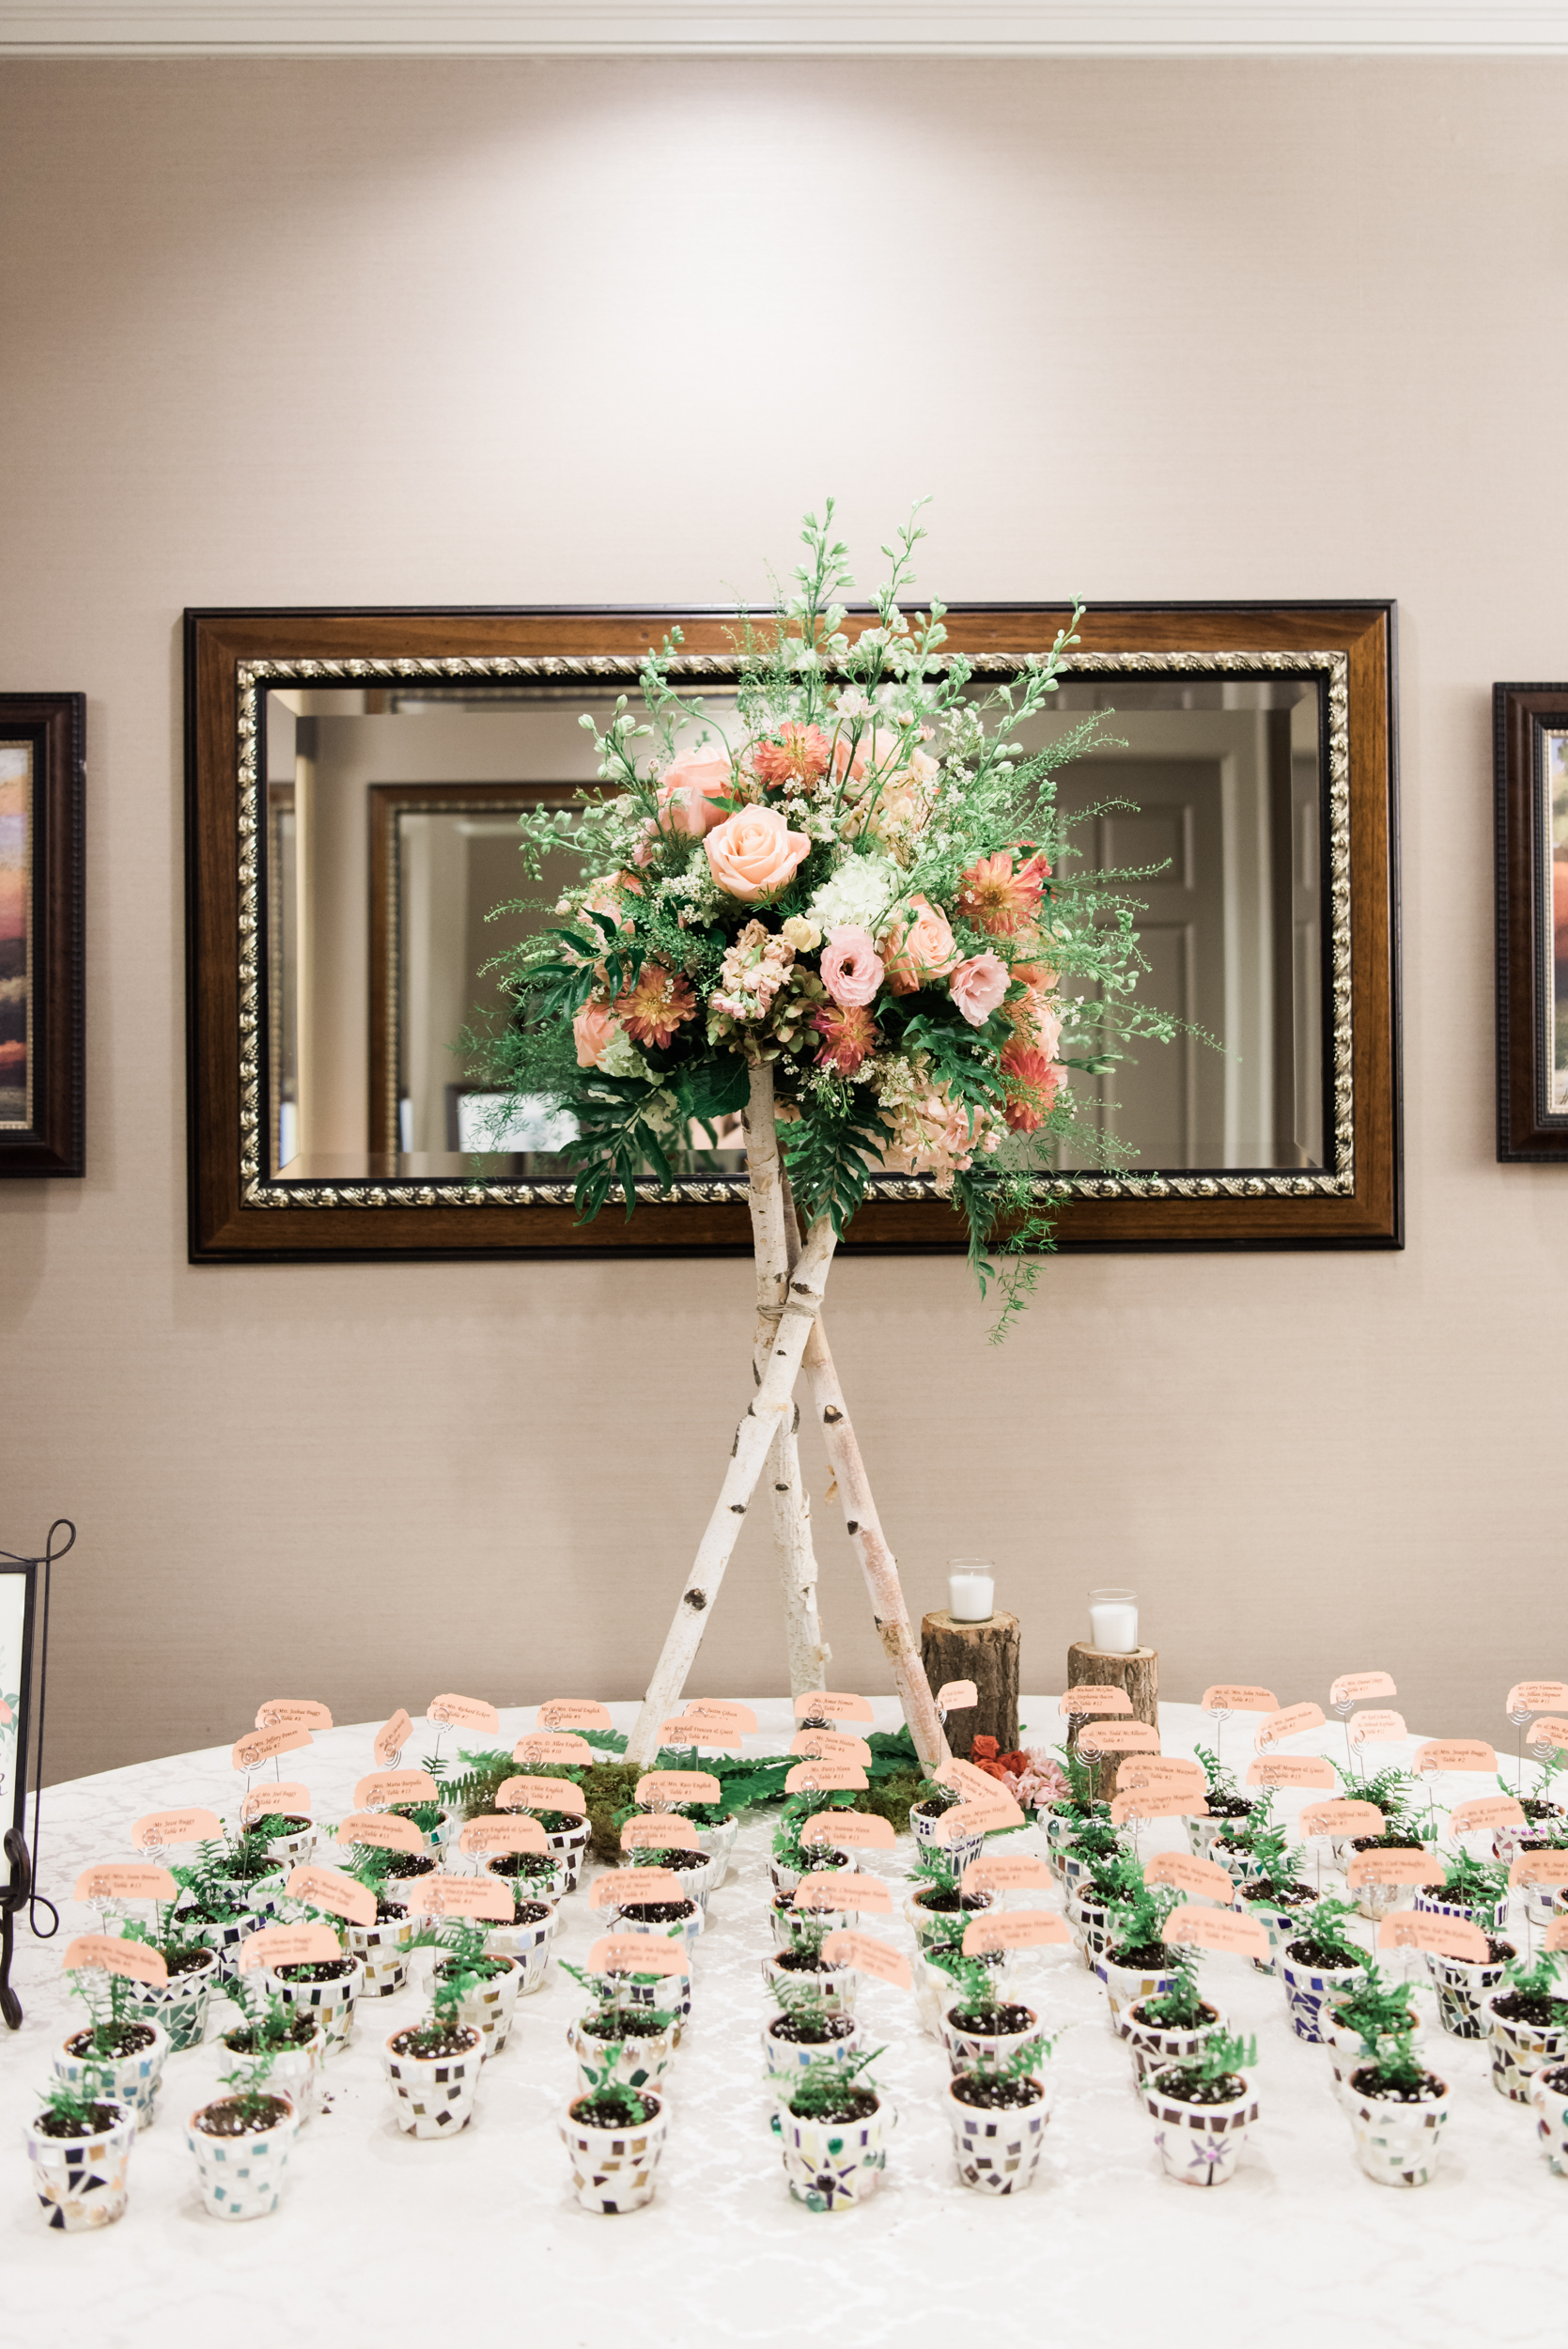 NJ Wedding, Seating Chart, Seating Assignments, Wedding Inspo, A Garden Party, Tall Centerpiece, Escort Cards